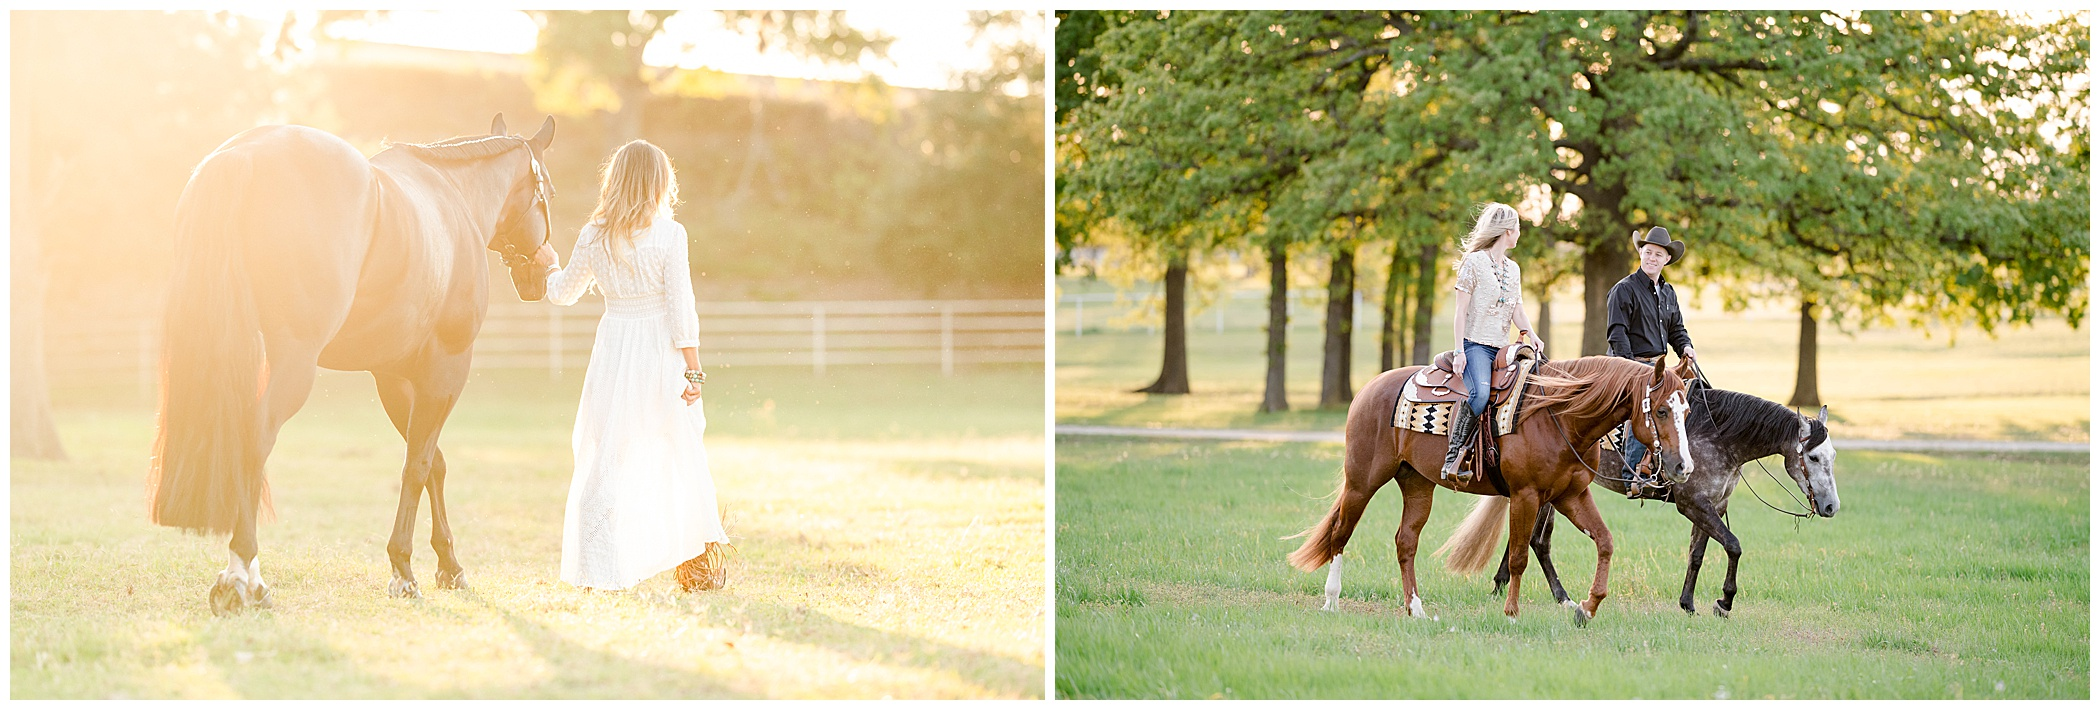 Bloopers of young girls and their horses outside during a KMP photoshoot